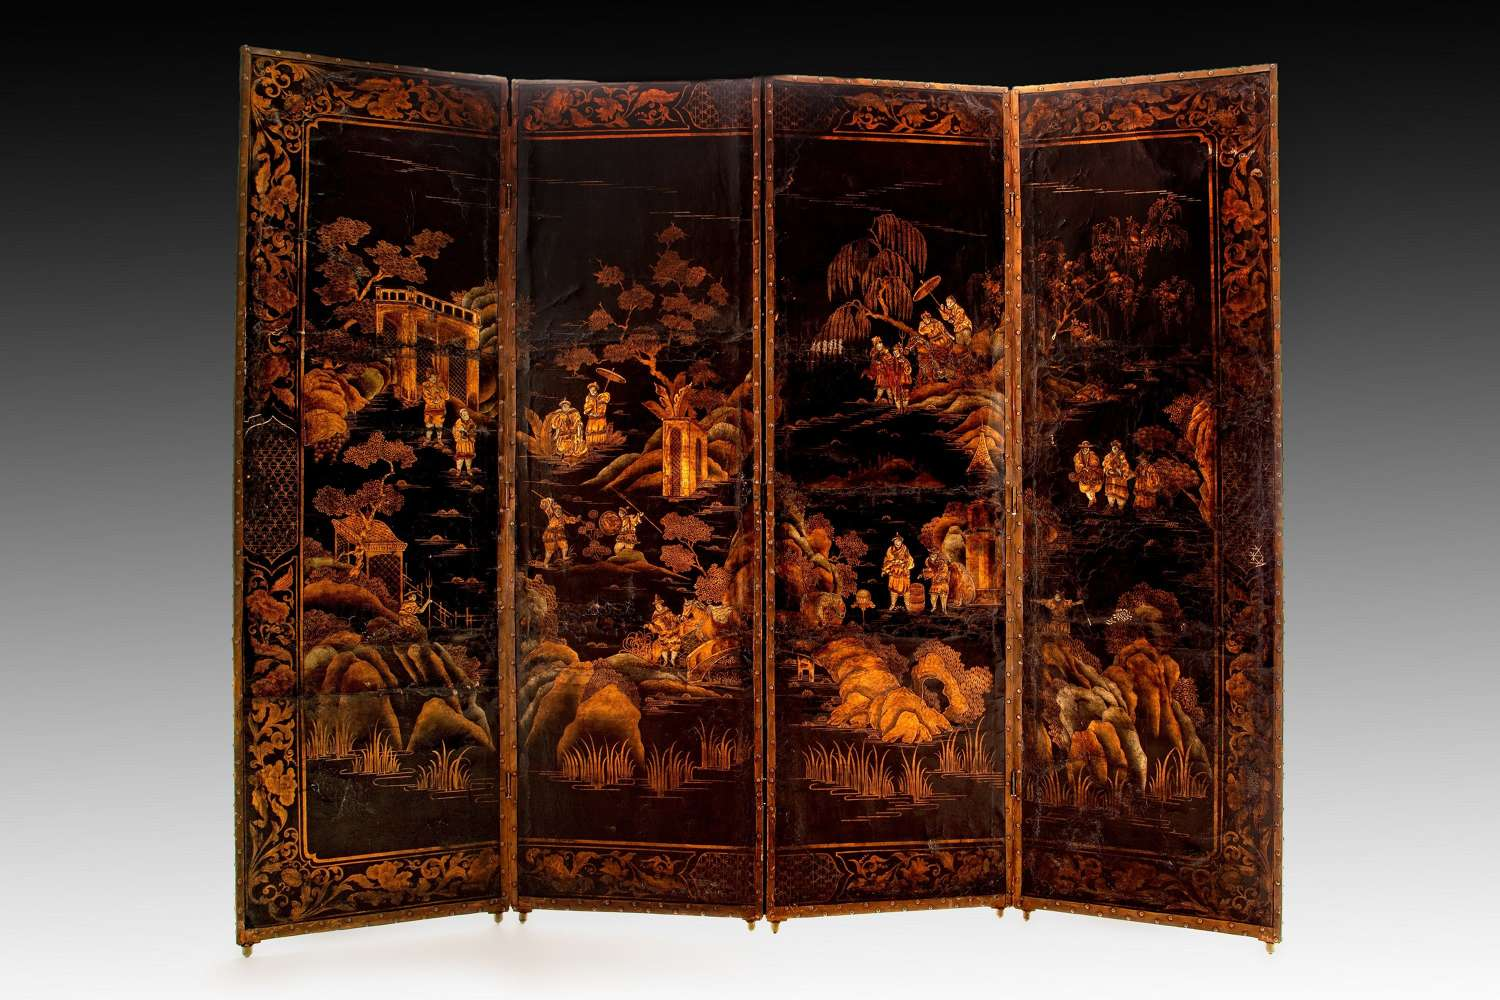 An early eighteenth century chinoiserie leather screen